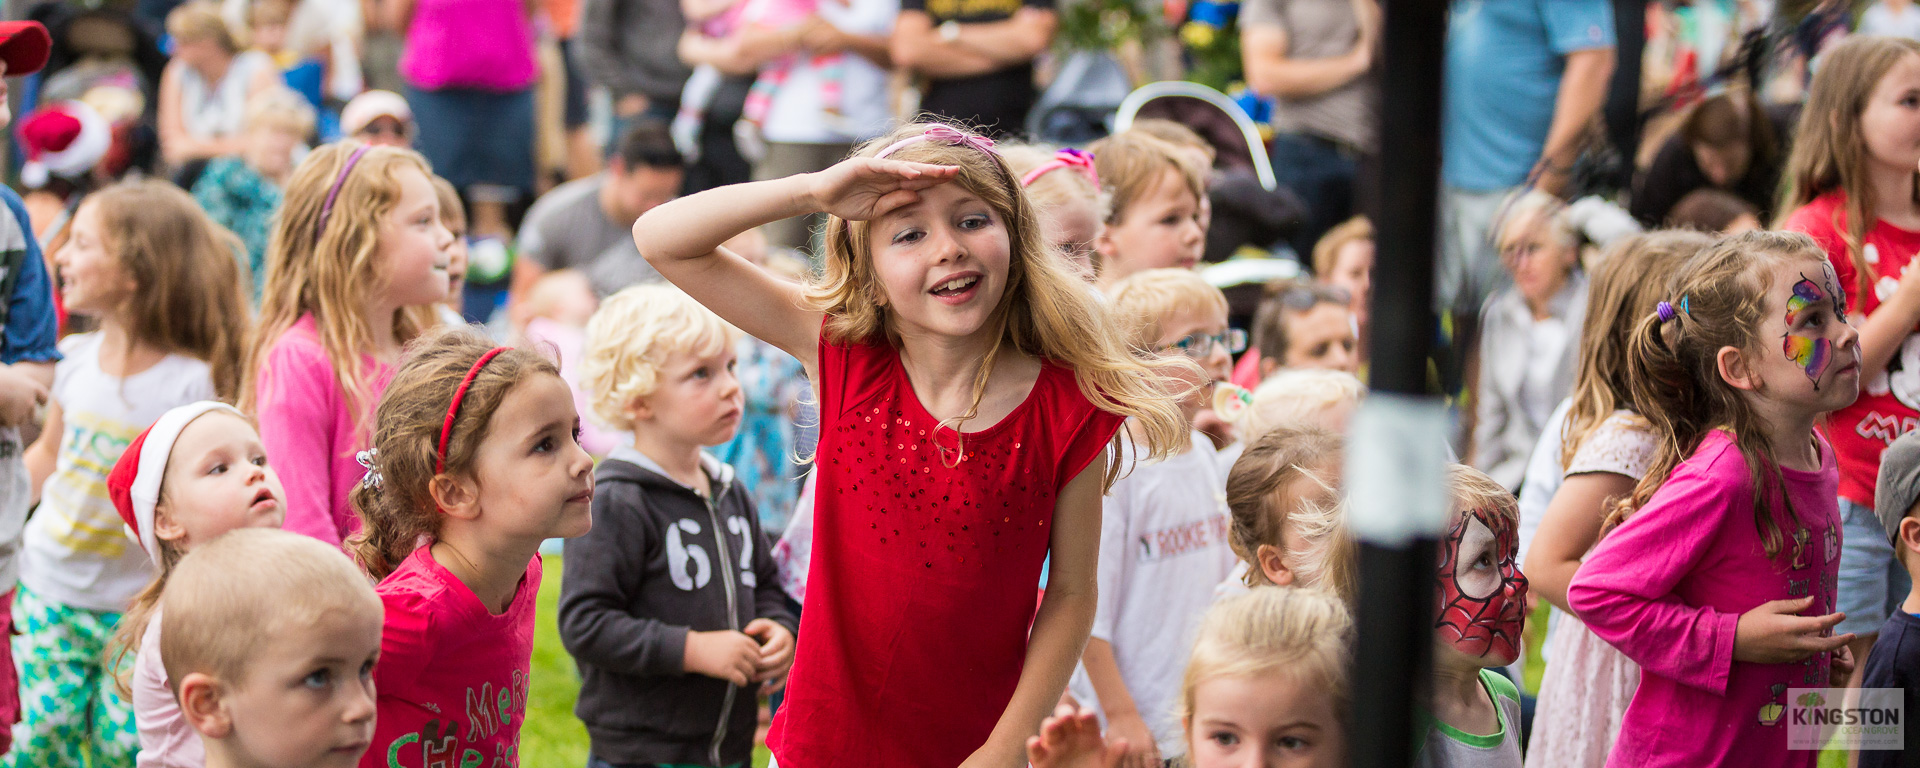 kids-show-family-fun-events-the-party-girl.jpg